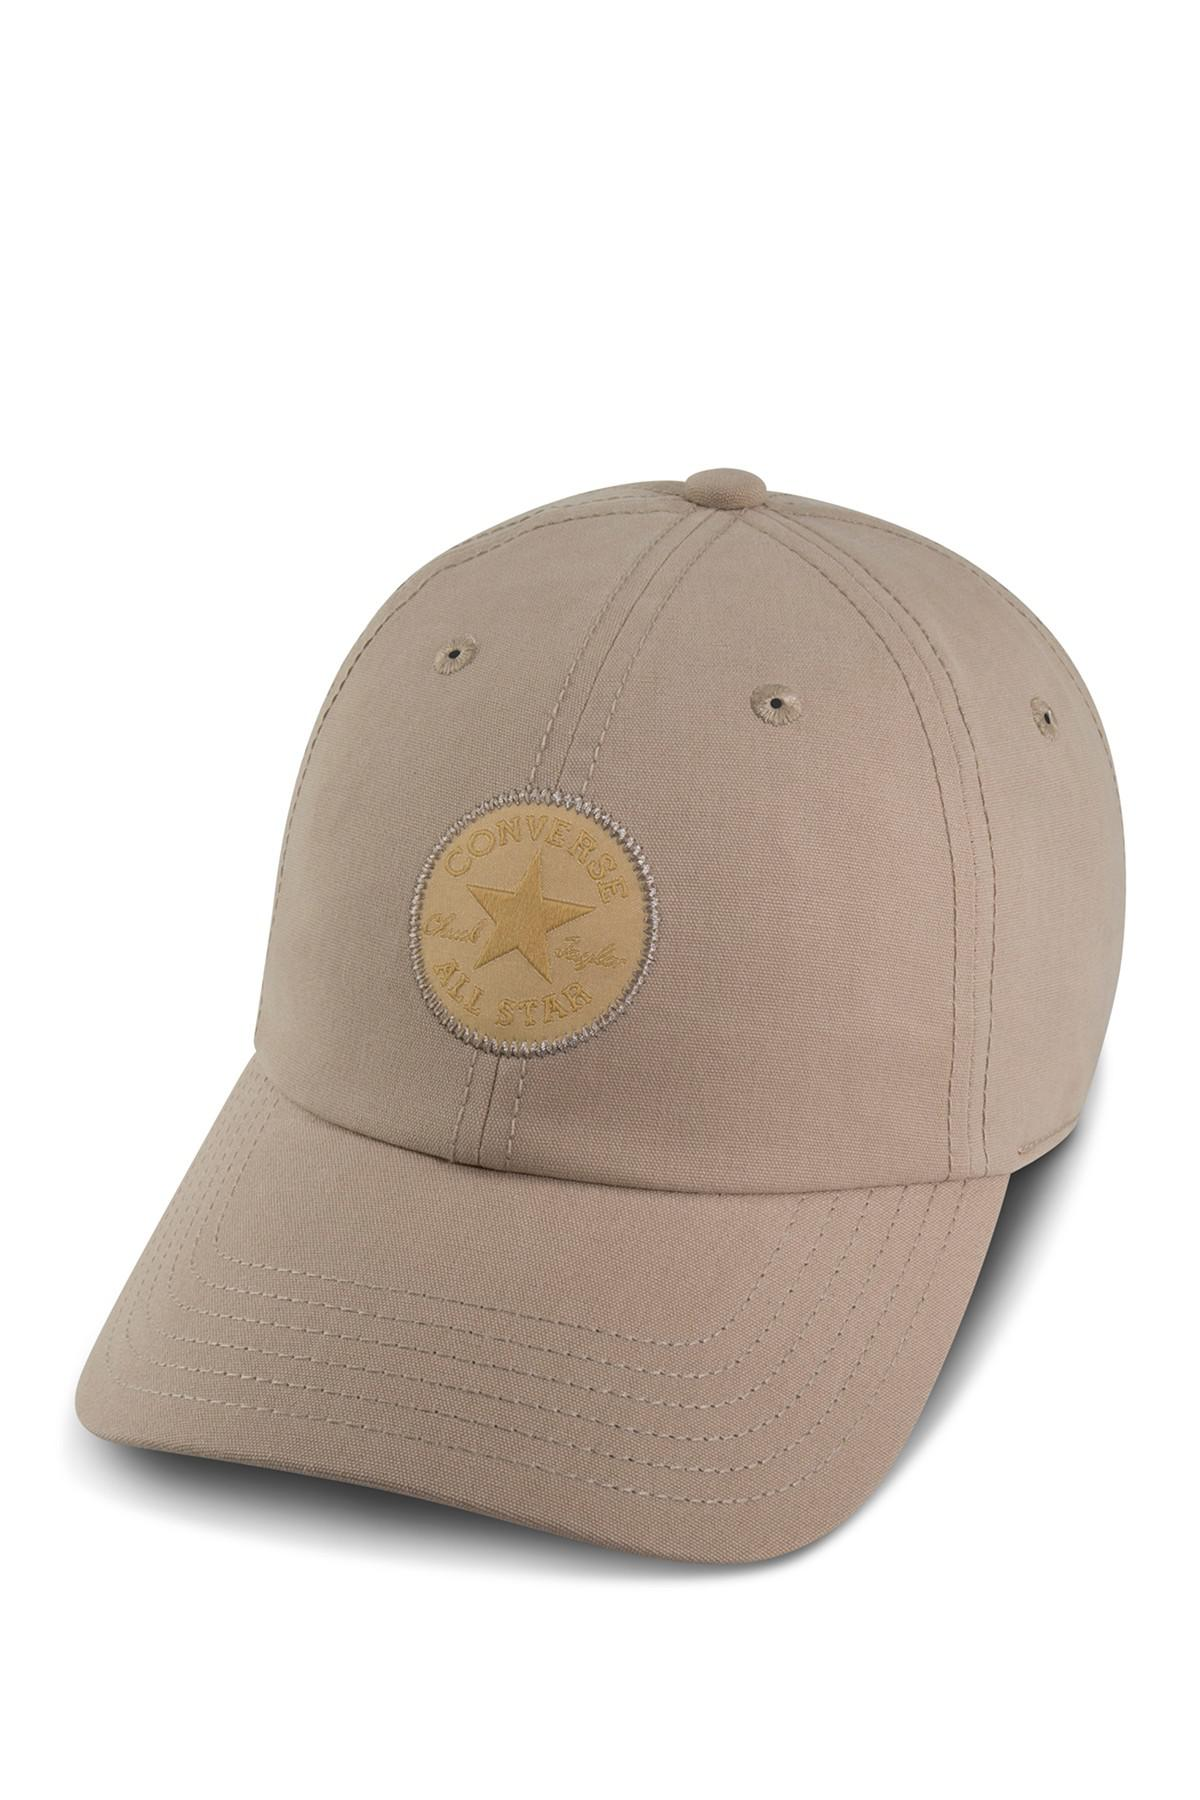 Lyst - Converse Monotone Core Baseball Cap in Natural 729592bb50d4